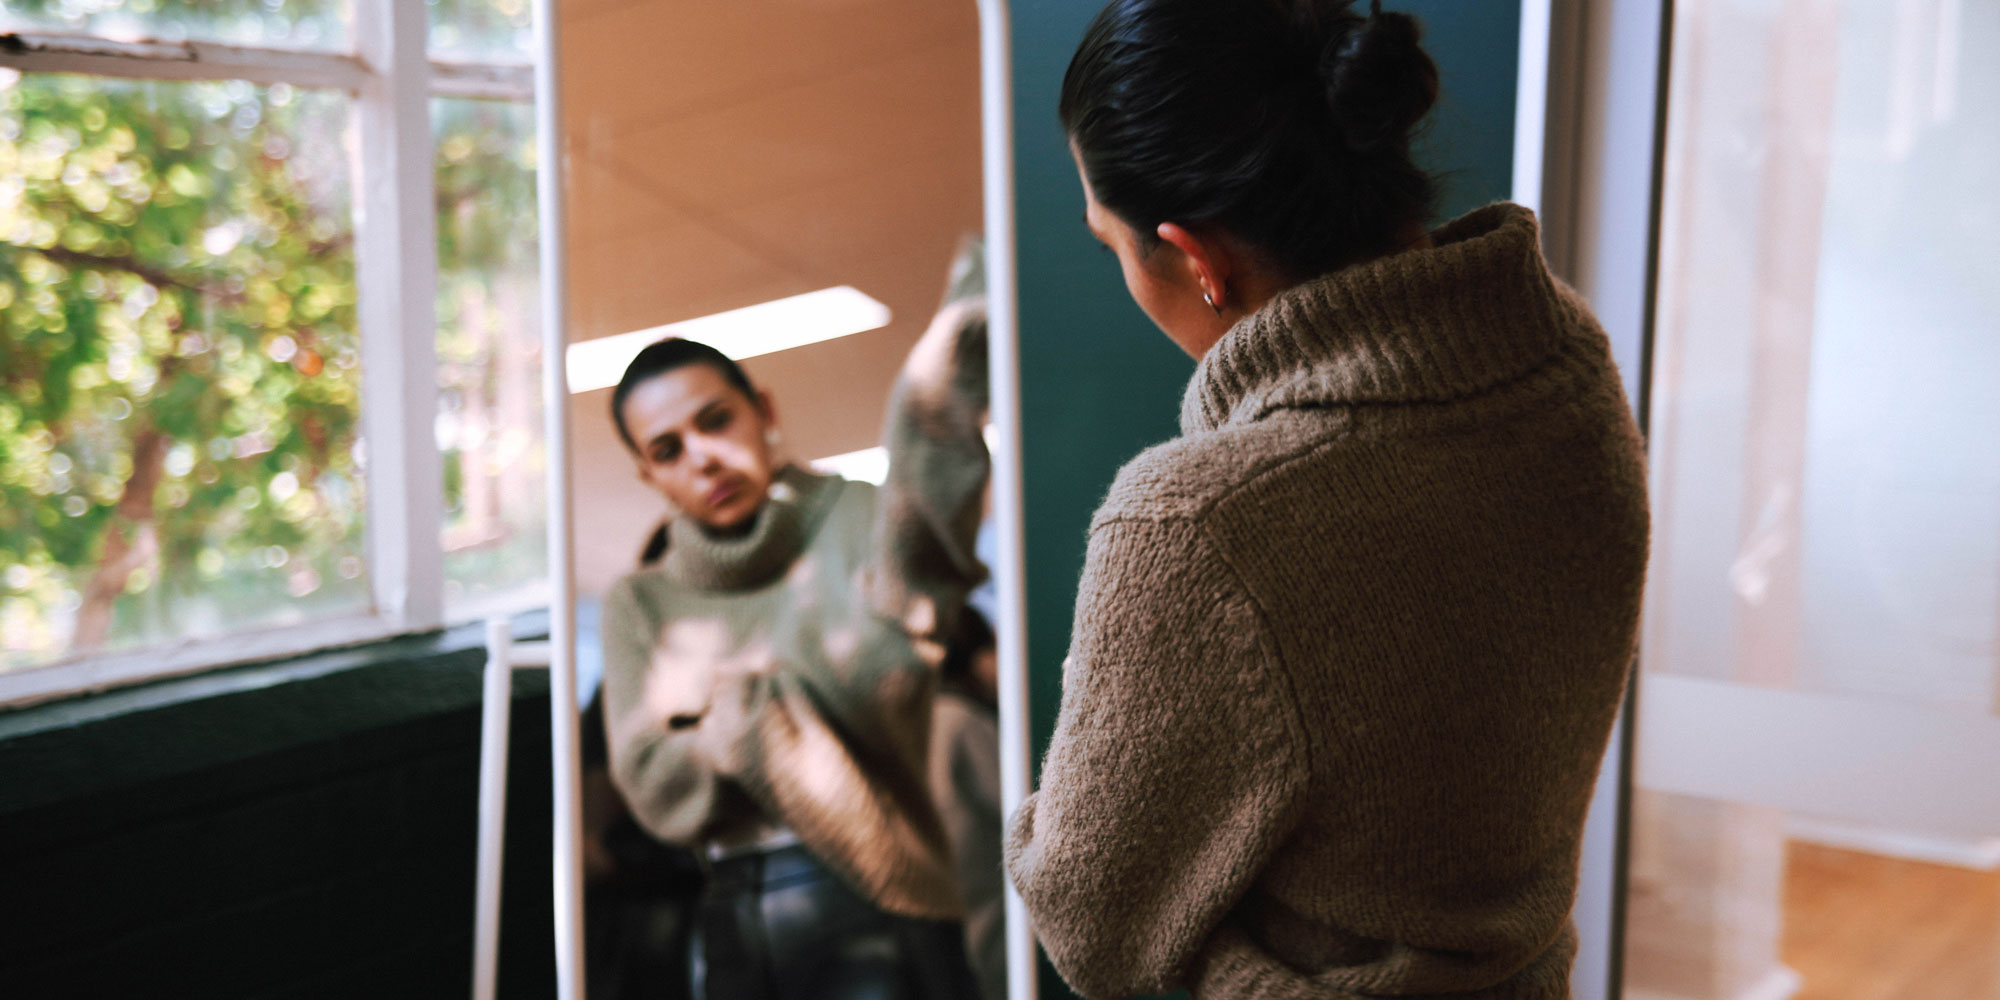 Wearing jumper in the mirror reflection